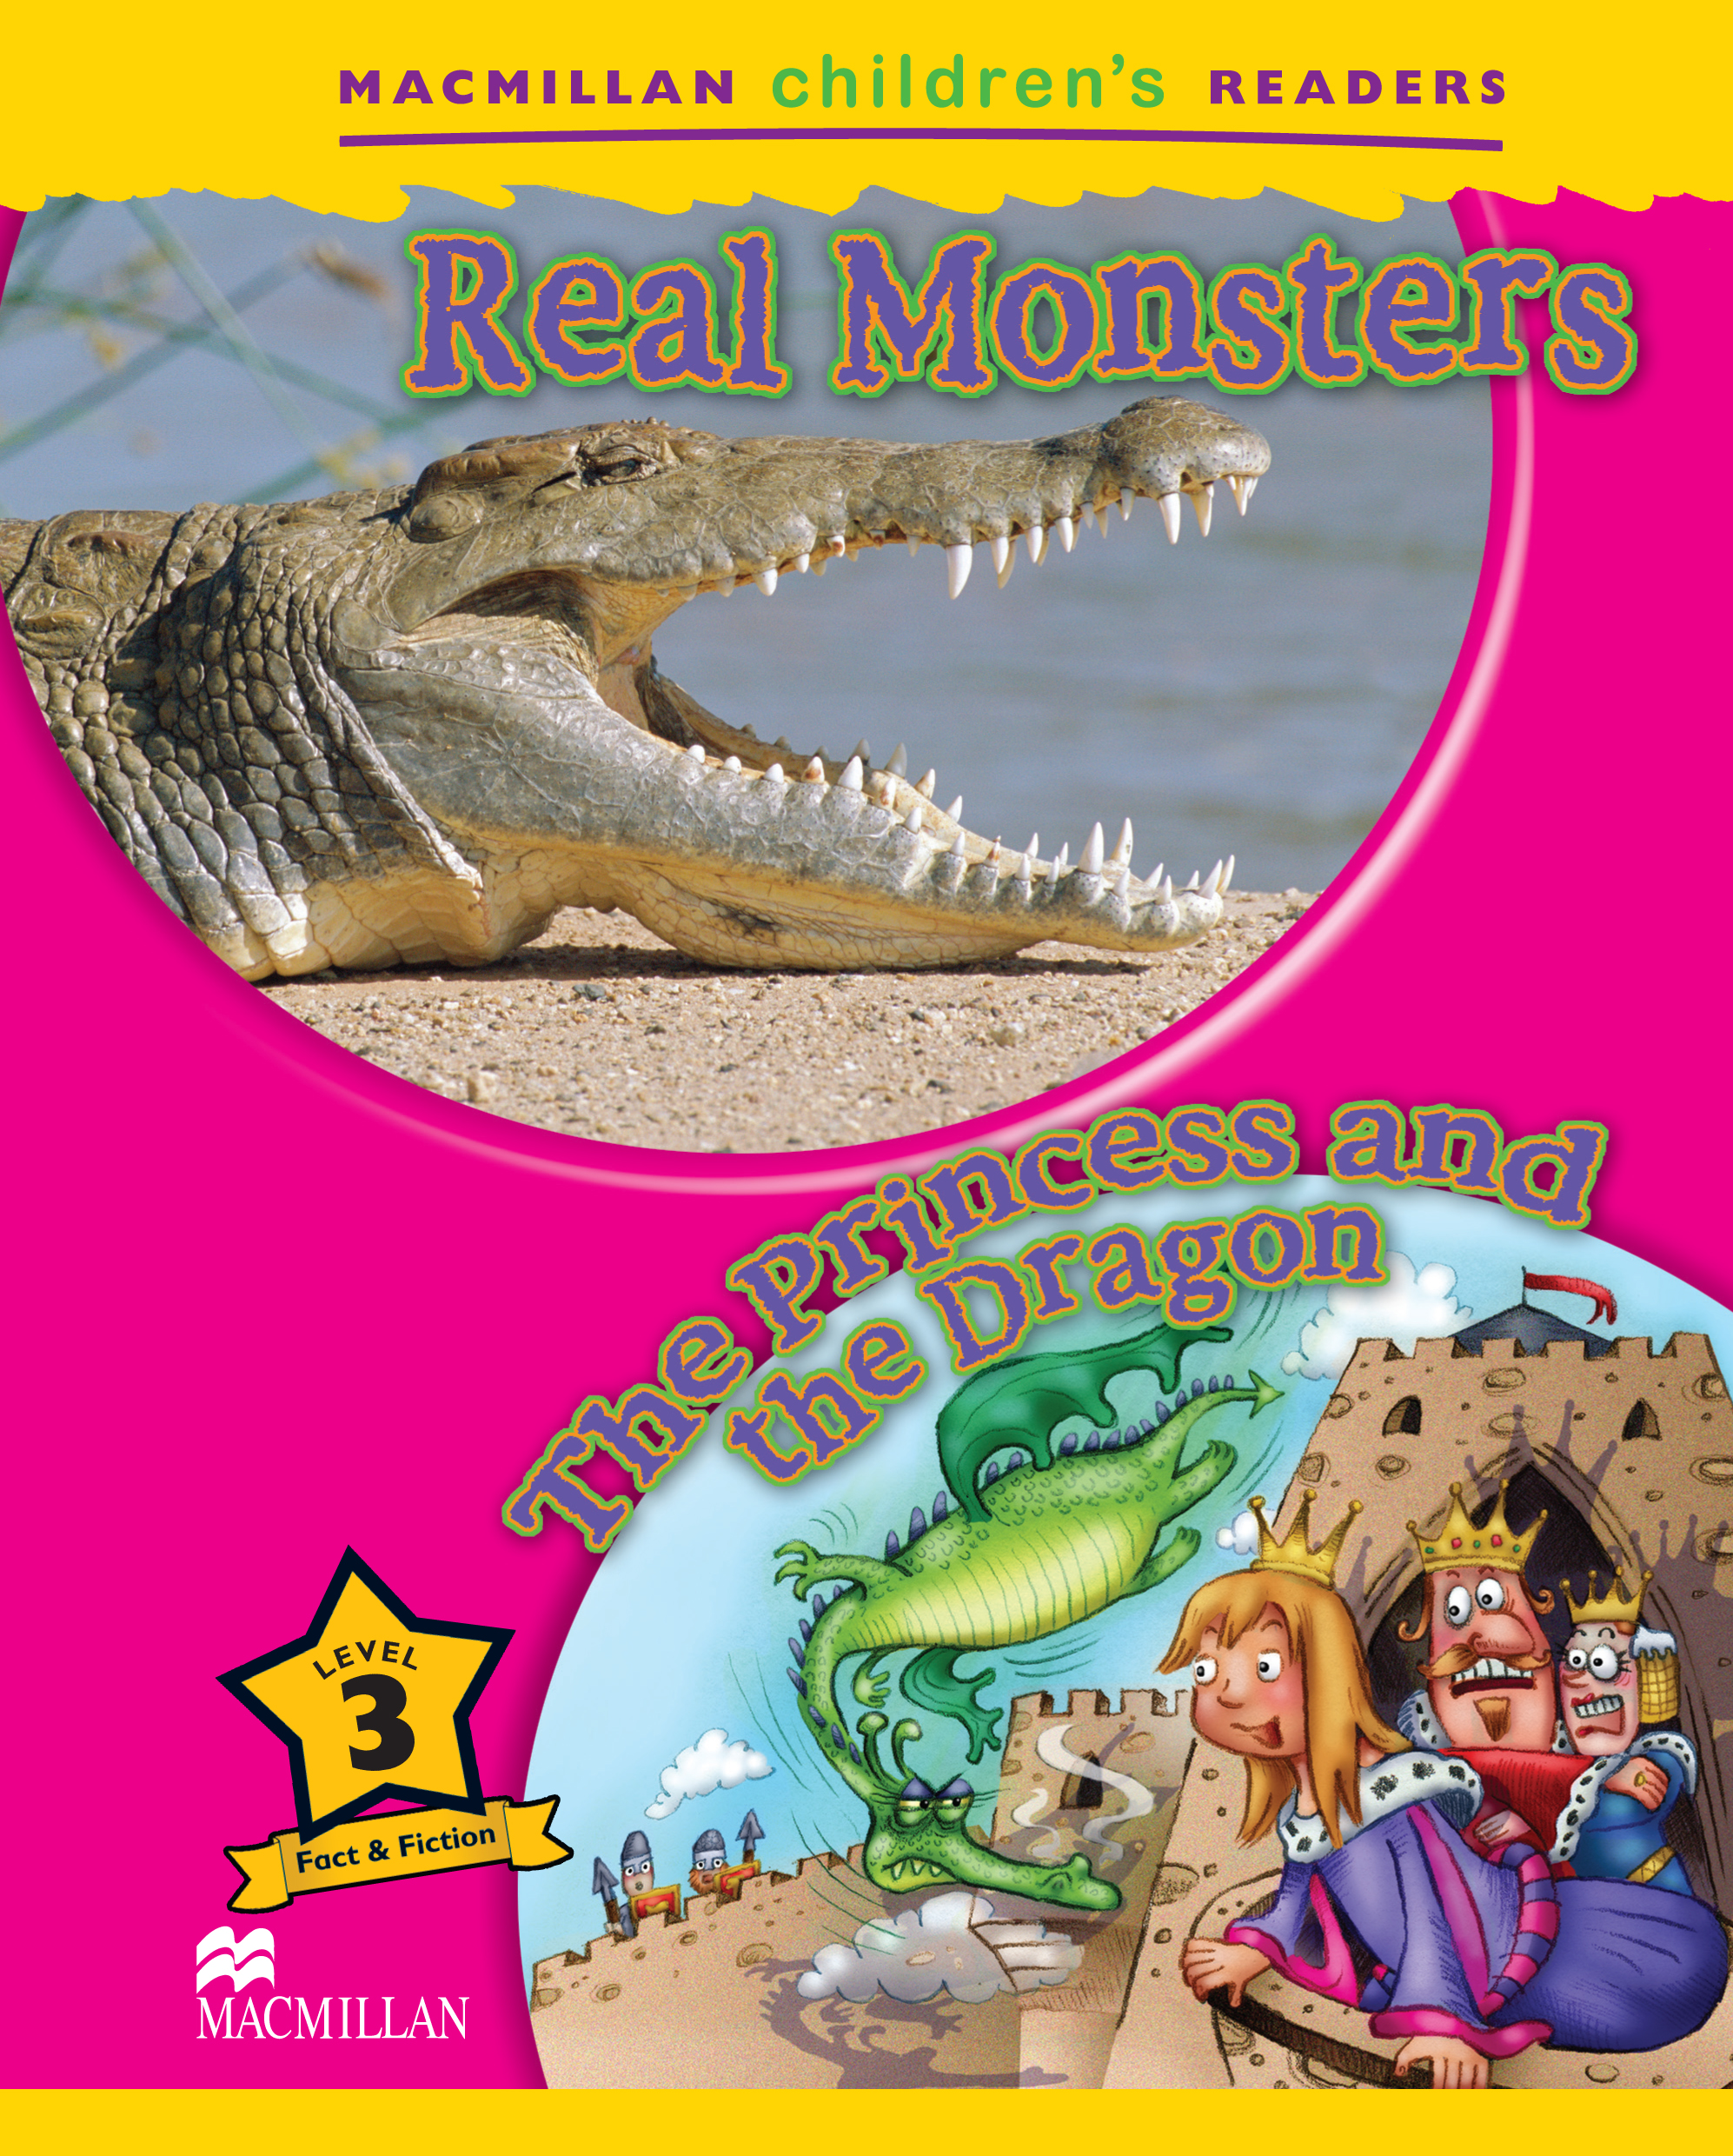 Real Monsters / The Princess and the Dragon